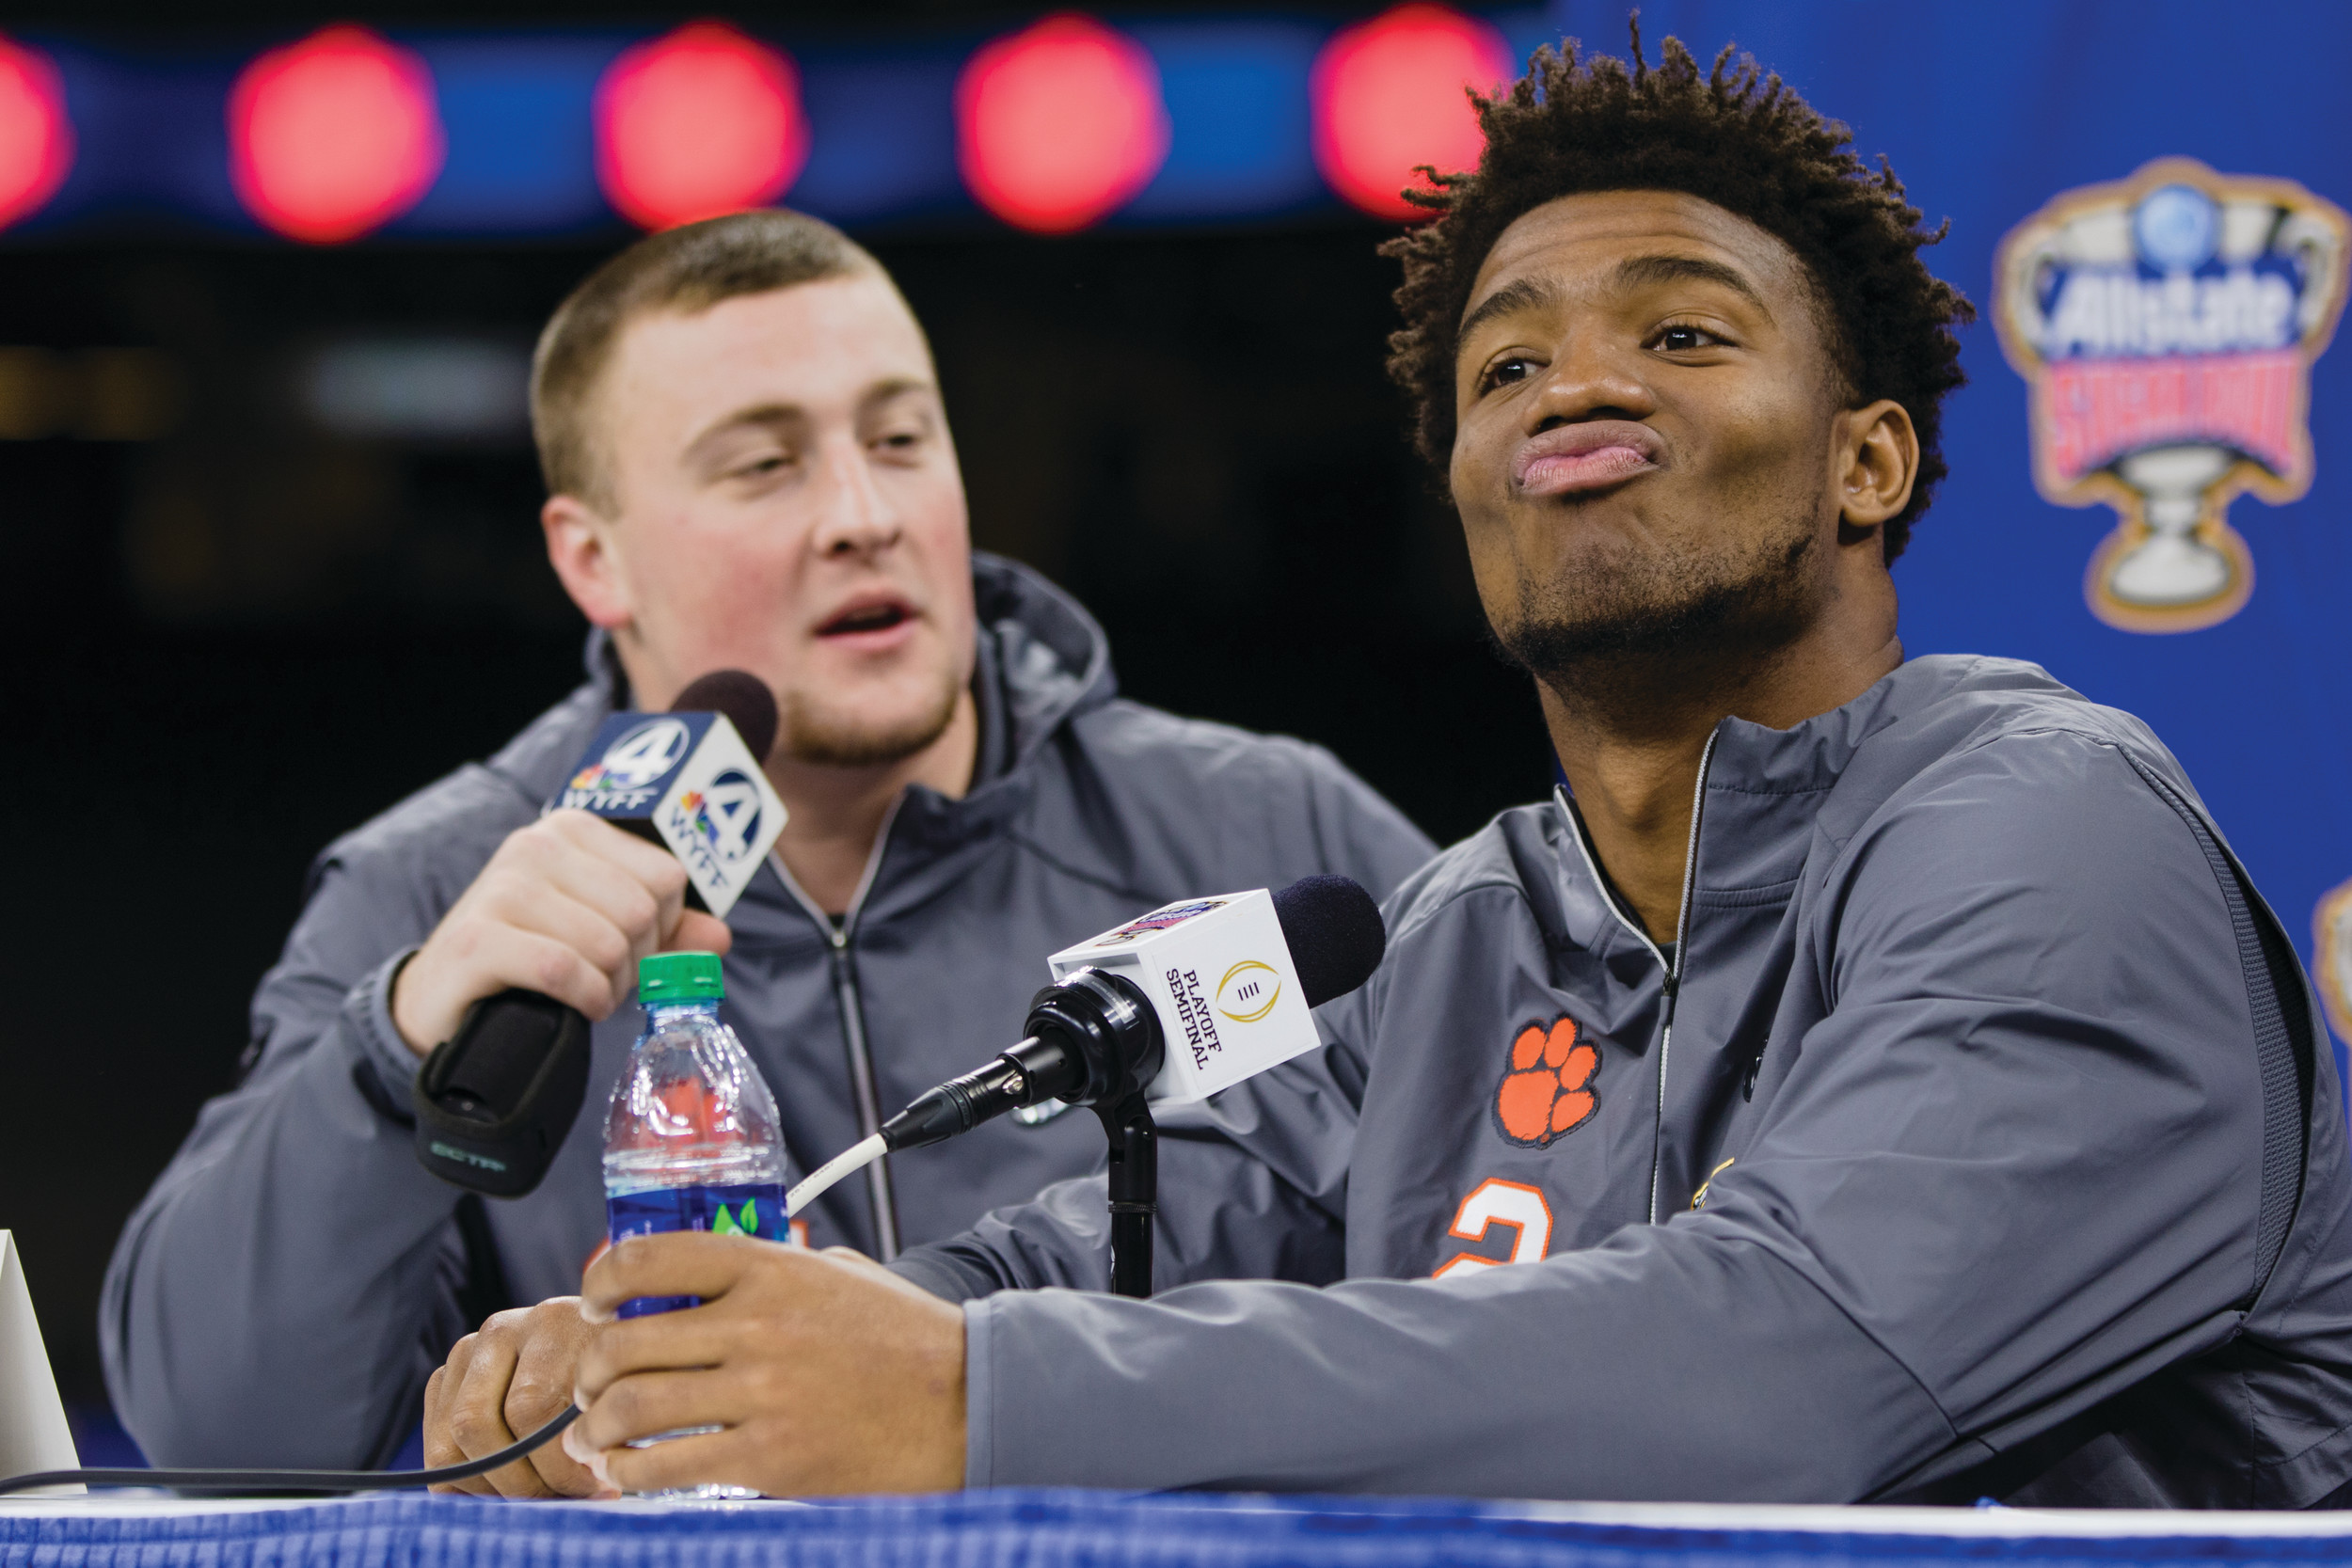 Clemson quarterback Kelly Bryant reacts at Saturday's press conference for the College Football Playoff Sugar Bowl, where the Tigers will face off against Alabama for a spot in the national championship game on Monday.